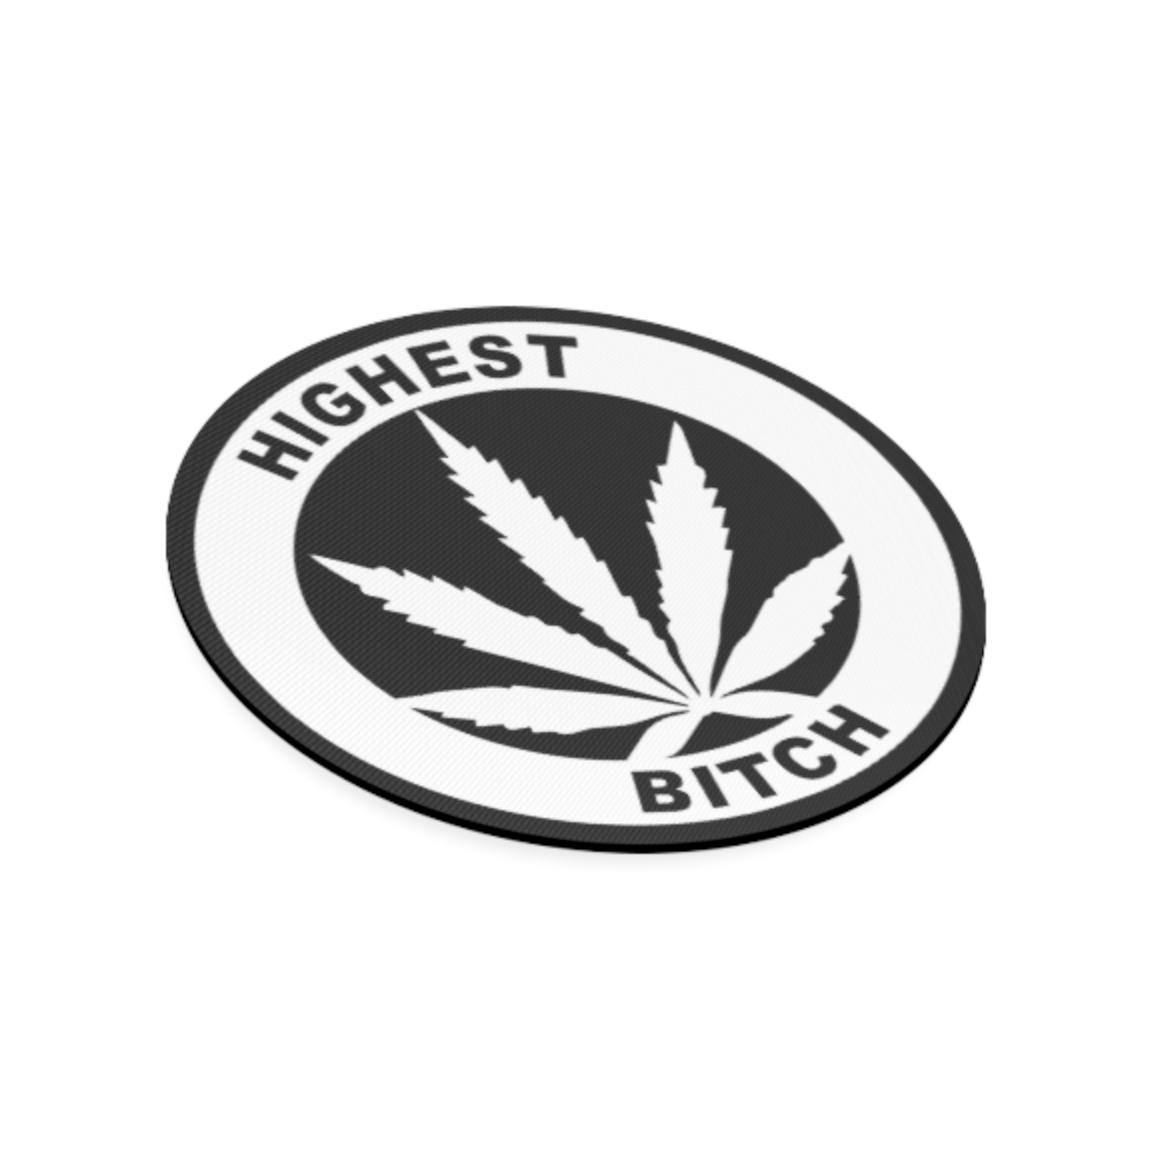 just get high_coaster_Highest bitch_logo